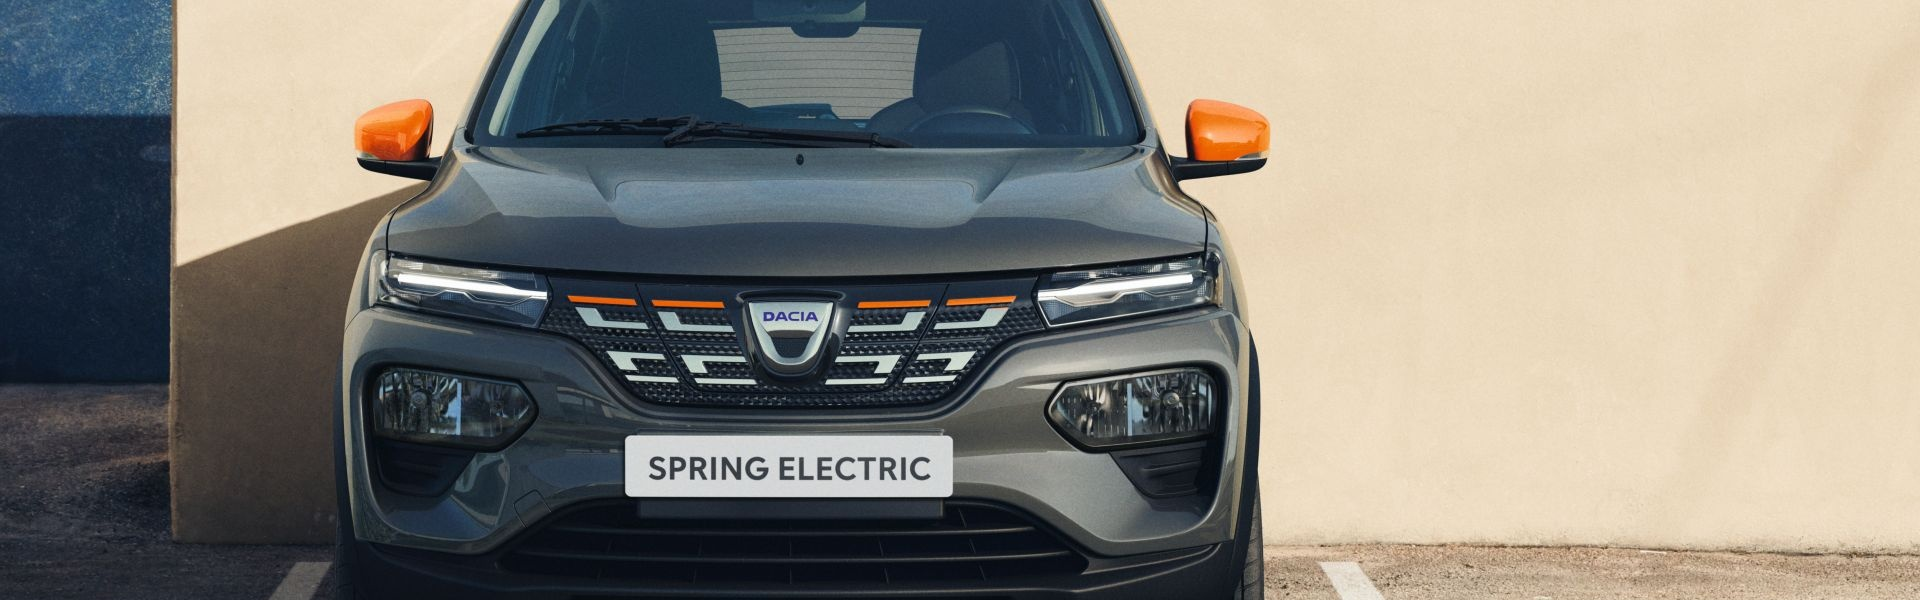 2021-Dacia-Spring-Electric-6.jpg